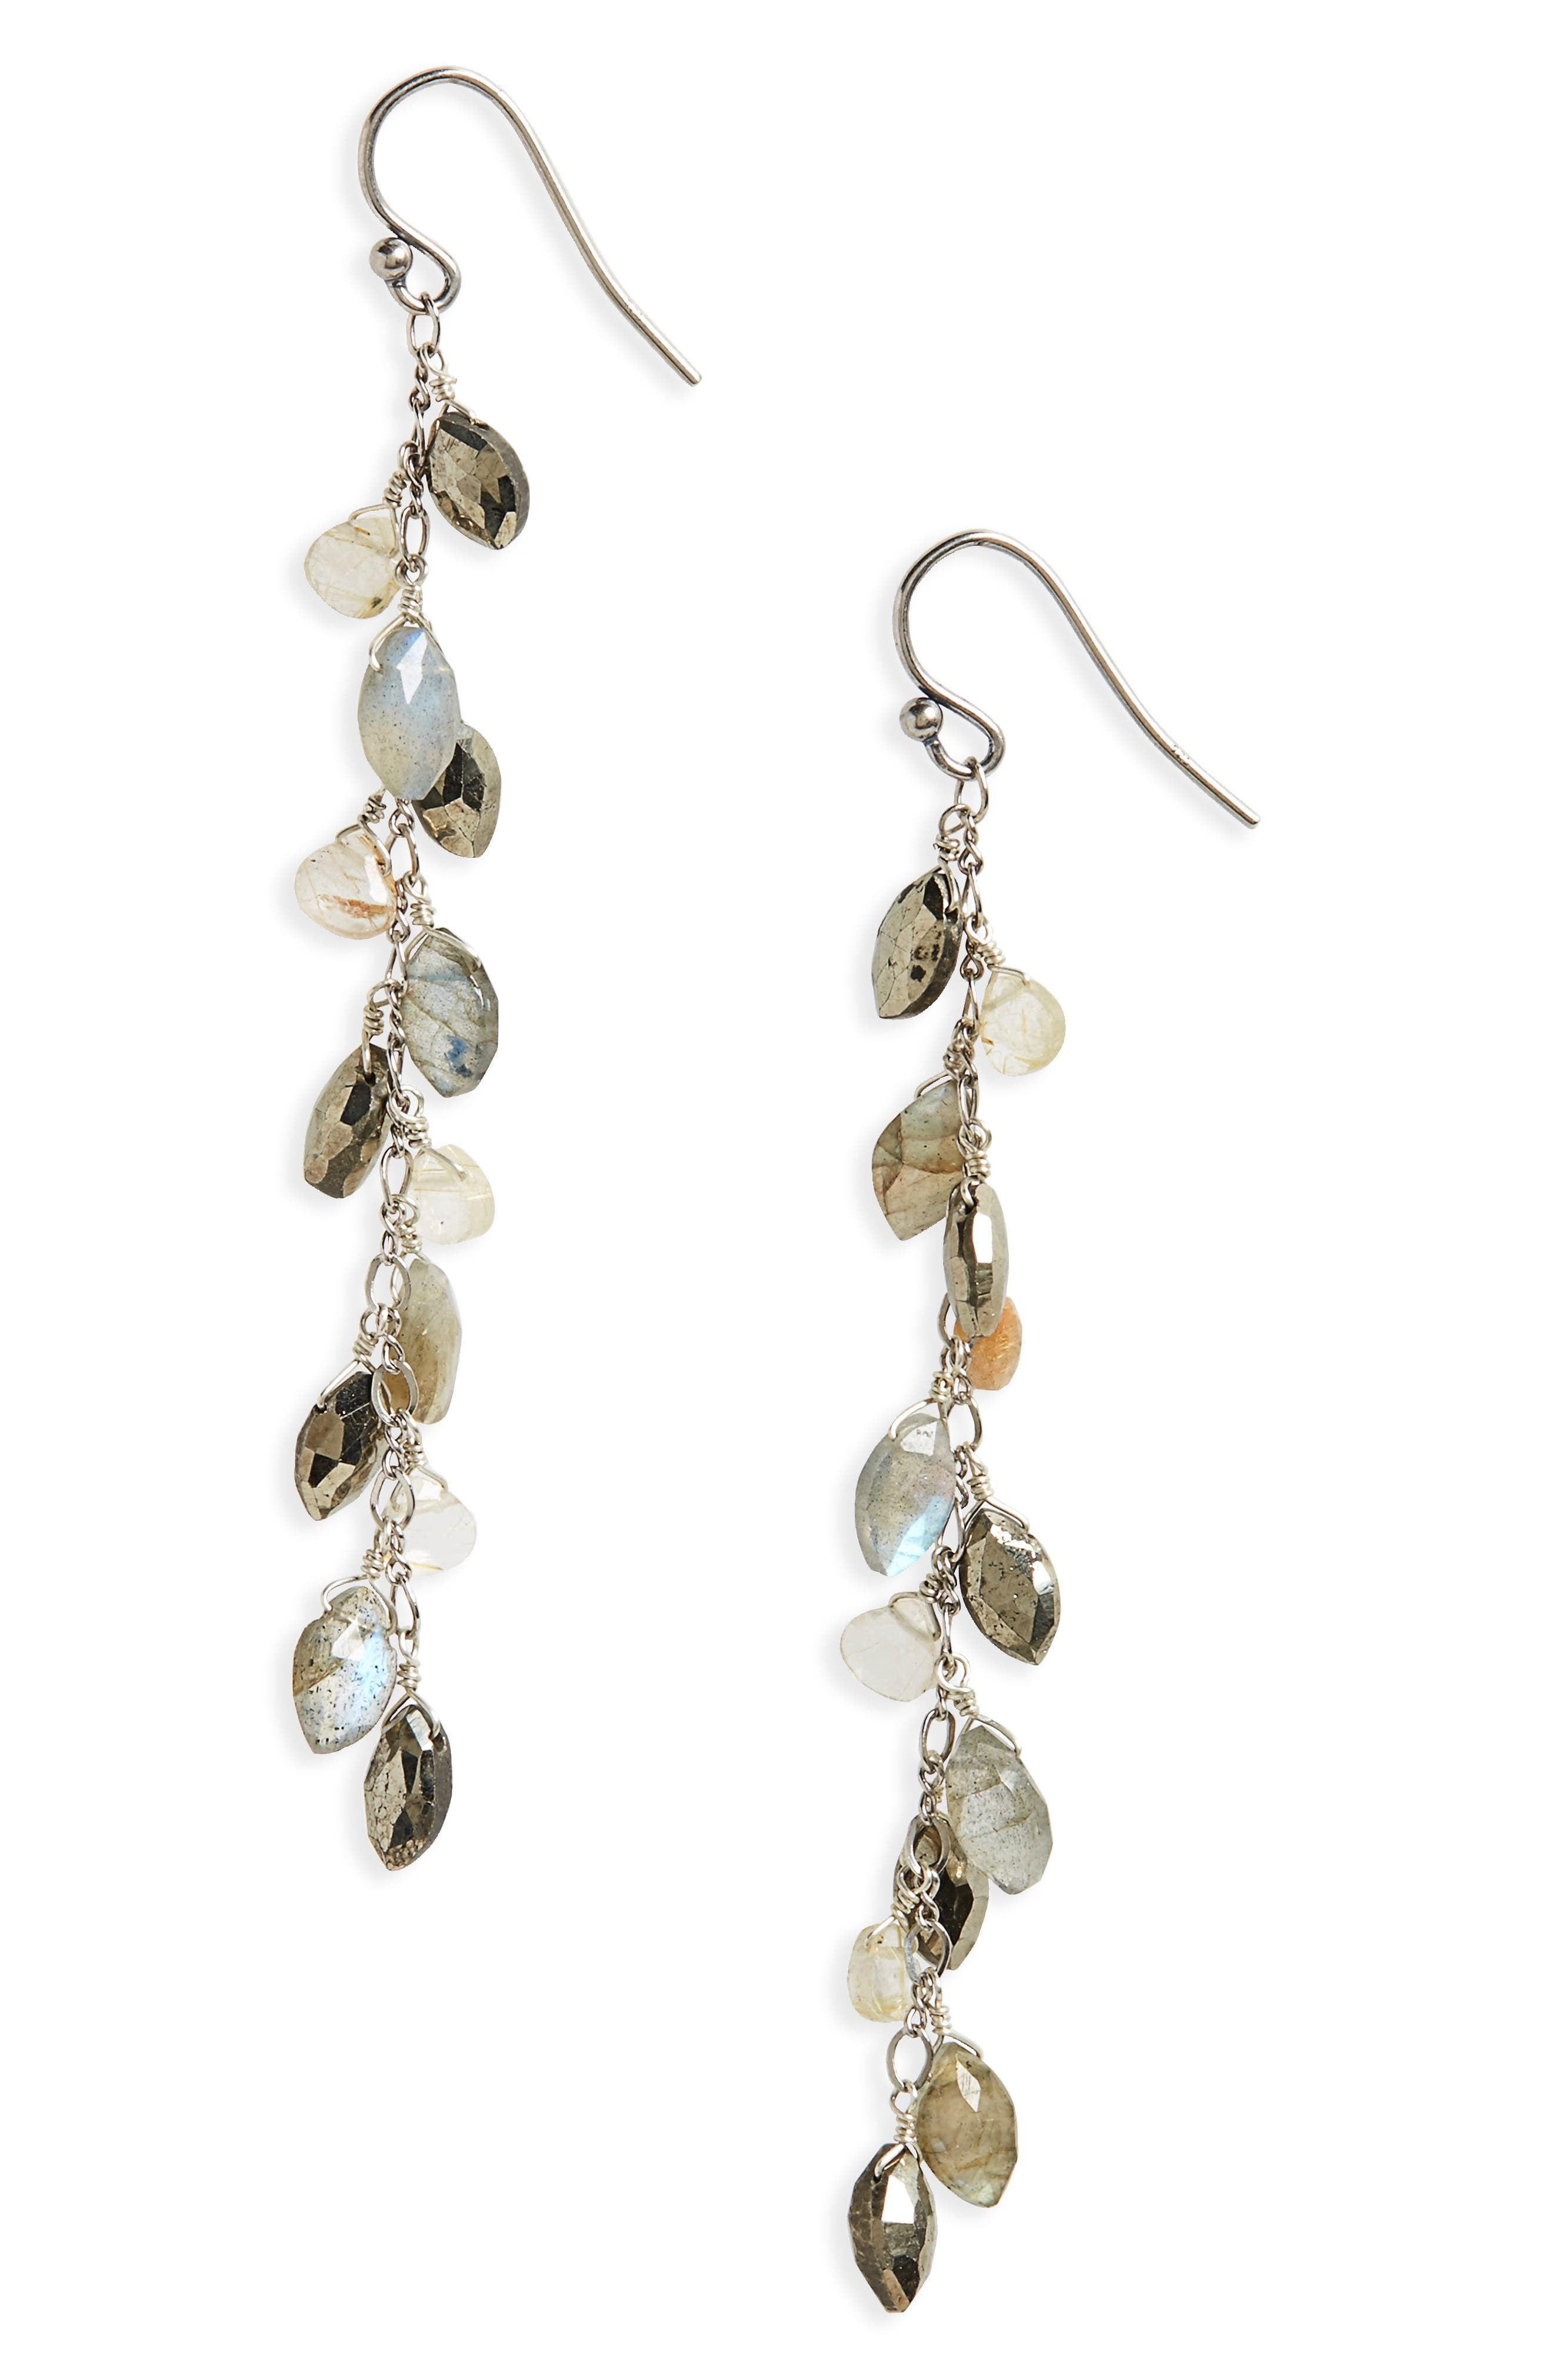 Semiprecious Stone Sterling Silver Drop Earrings,                         Main,                         color, Pyrite/ Silver